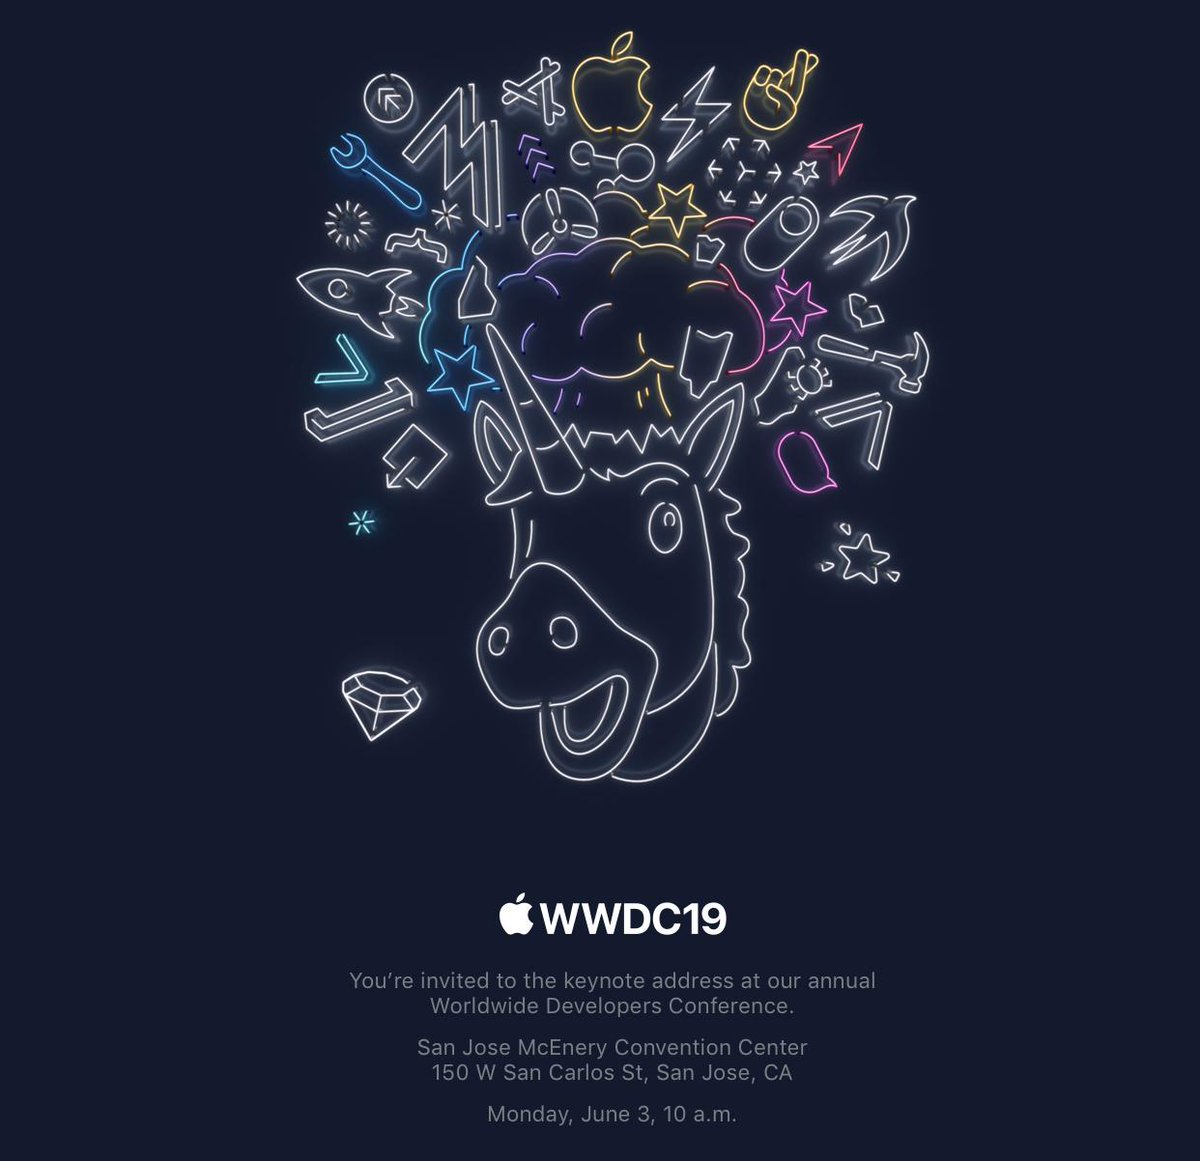 Apple Sends Out Invites For Wwdc 2019 Keynote Img 1